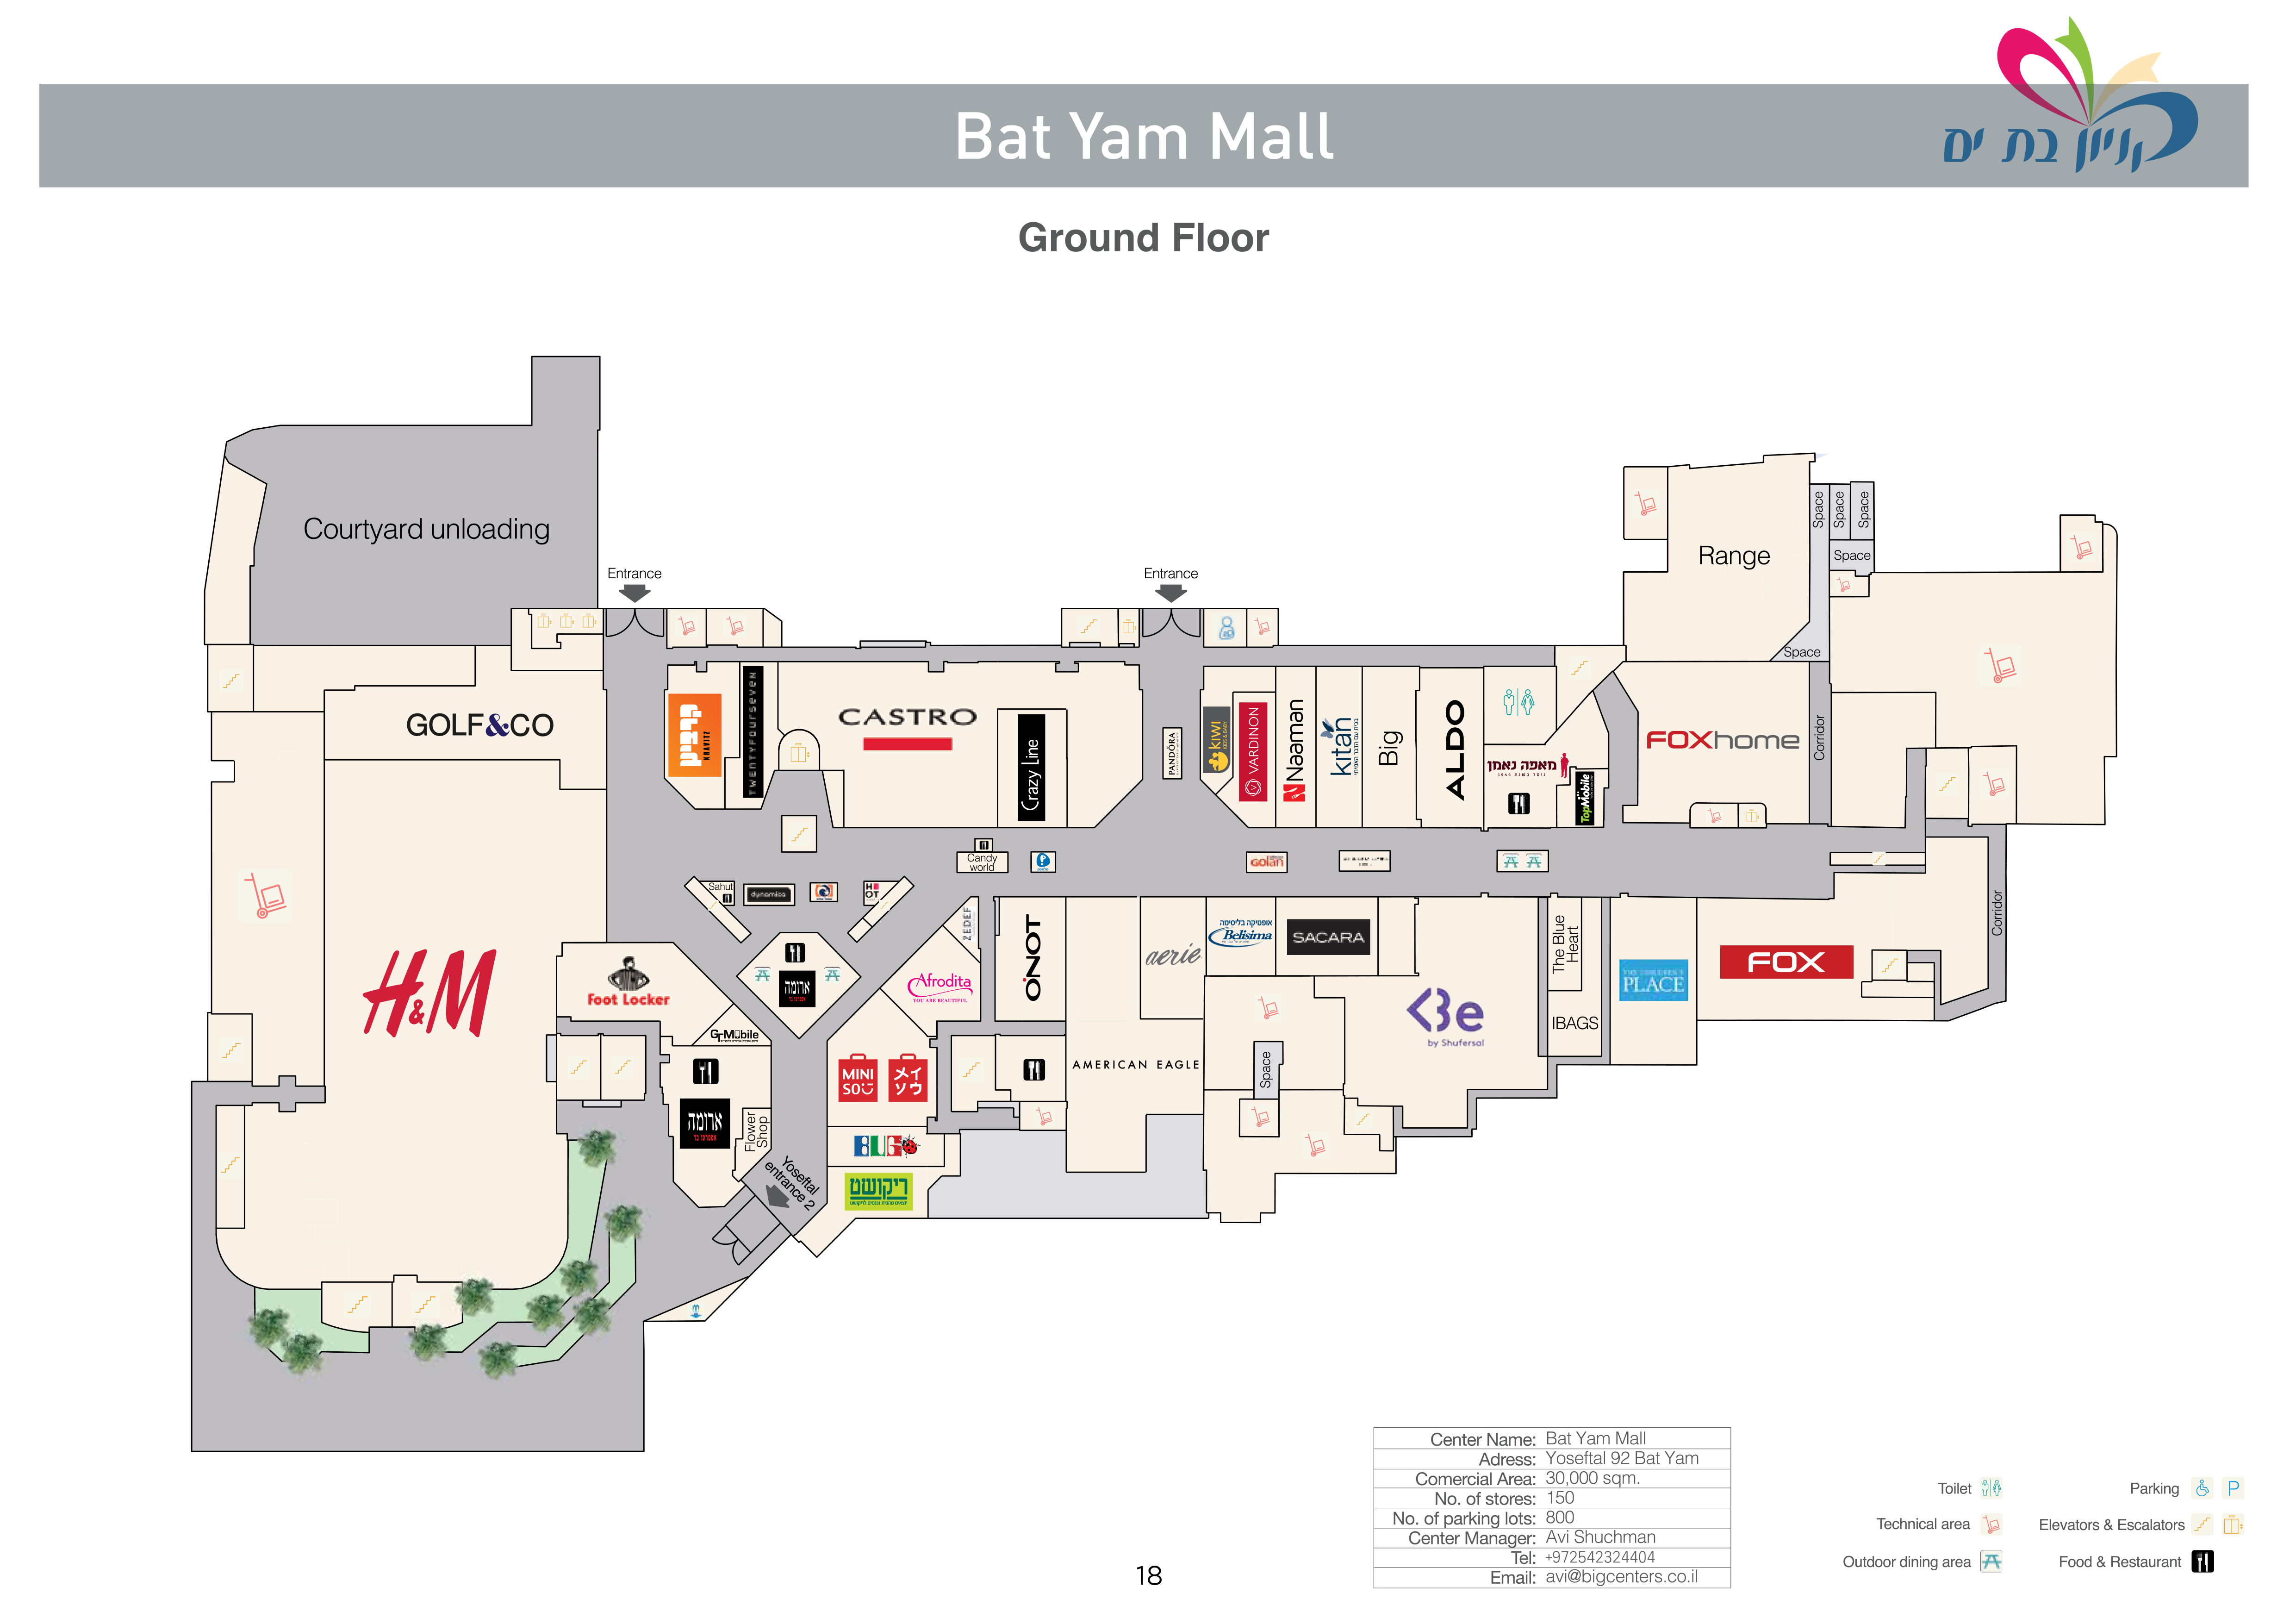 Bat Yam Mall  Ground Floor